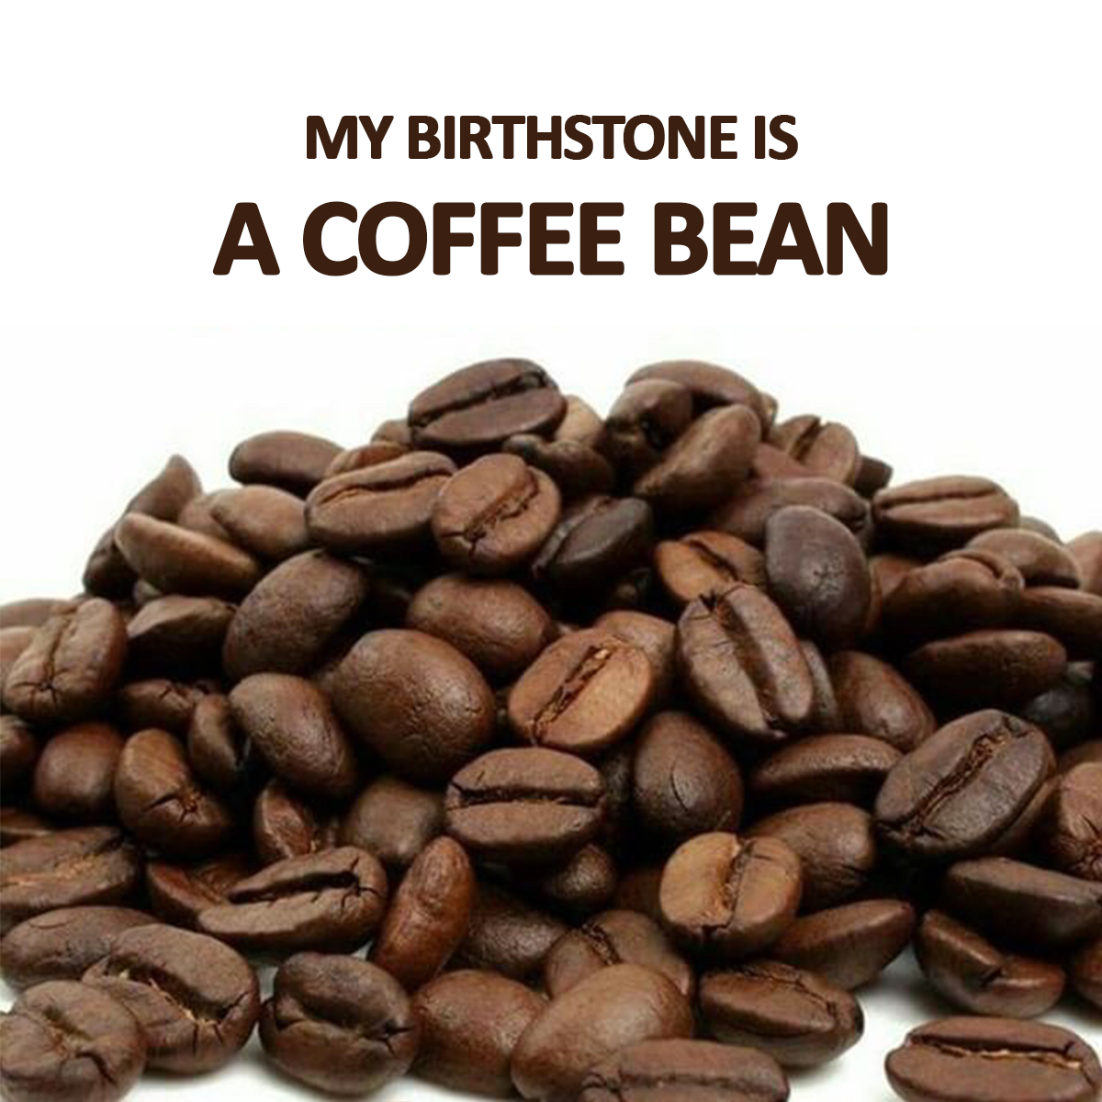 My birthstone is a coffee bean. What's yours? Thanks